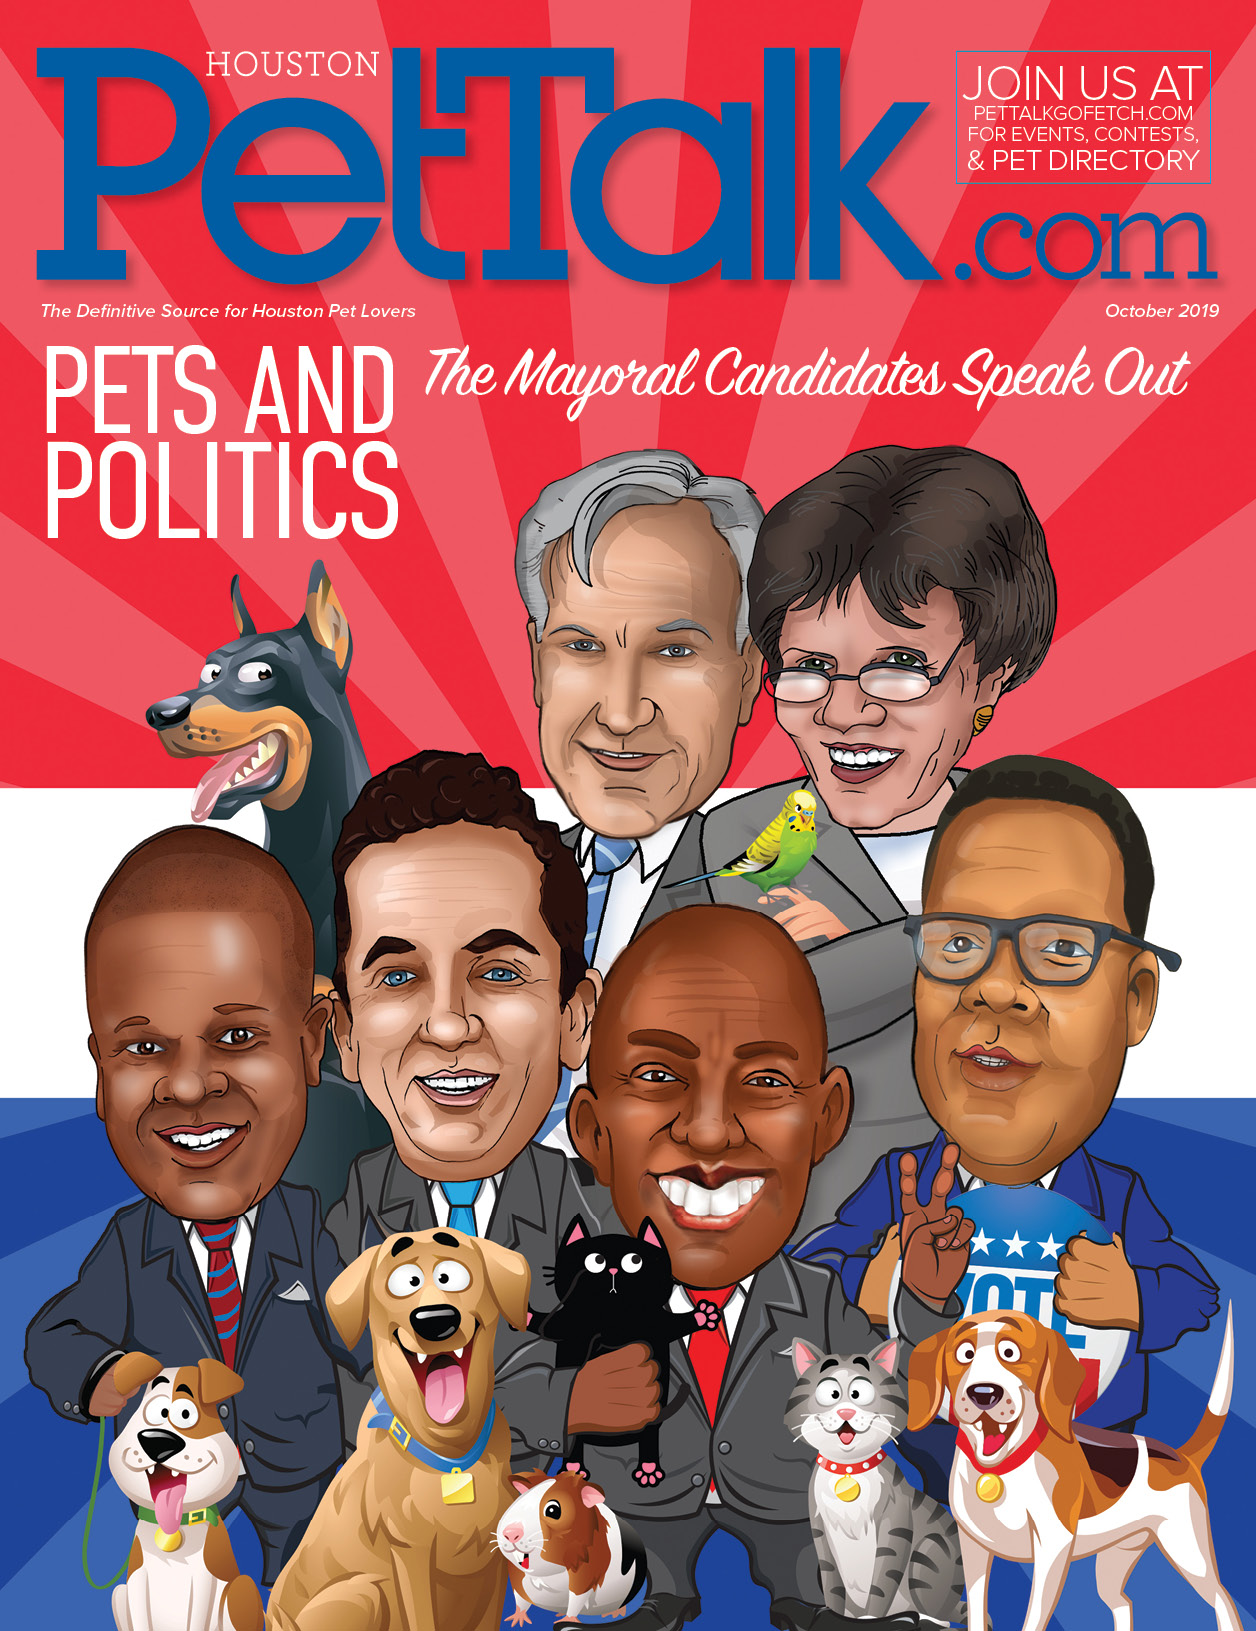 October 2019 Digital Issue of Houston PetTalk